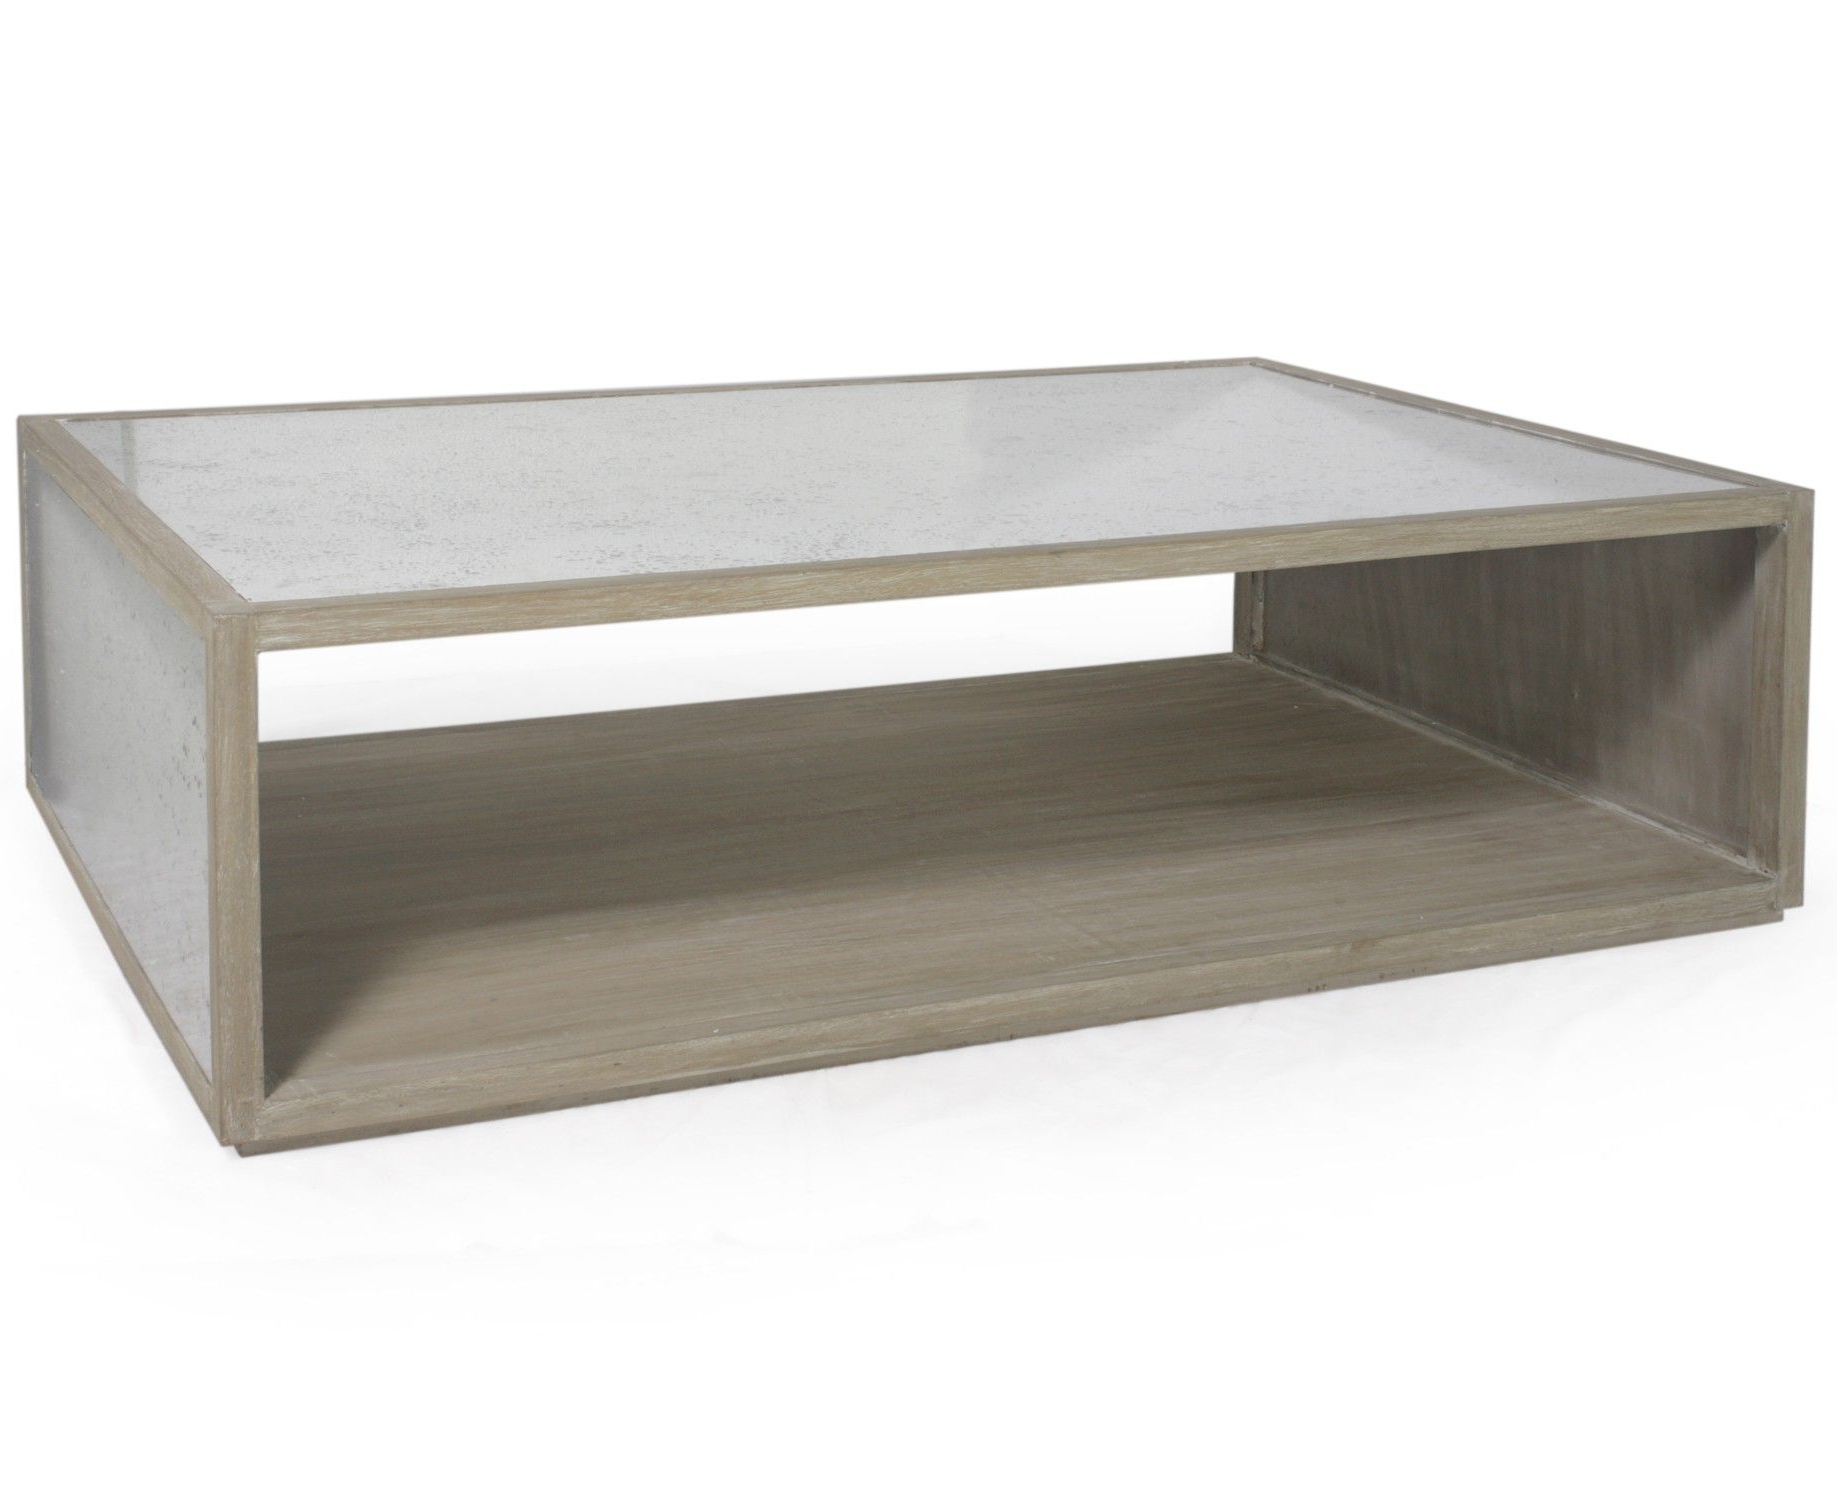 Artesia – V1 Derek Ct Lw Derek Coffee Table Lime Wash With Antique Inside Best And Newest Limewash Coffee Tables (Gallery 2 of 20)